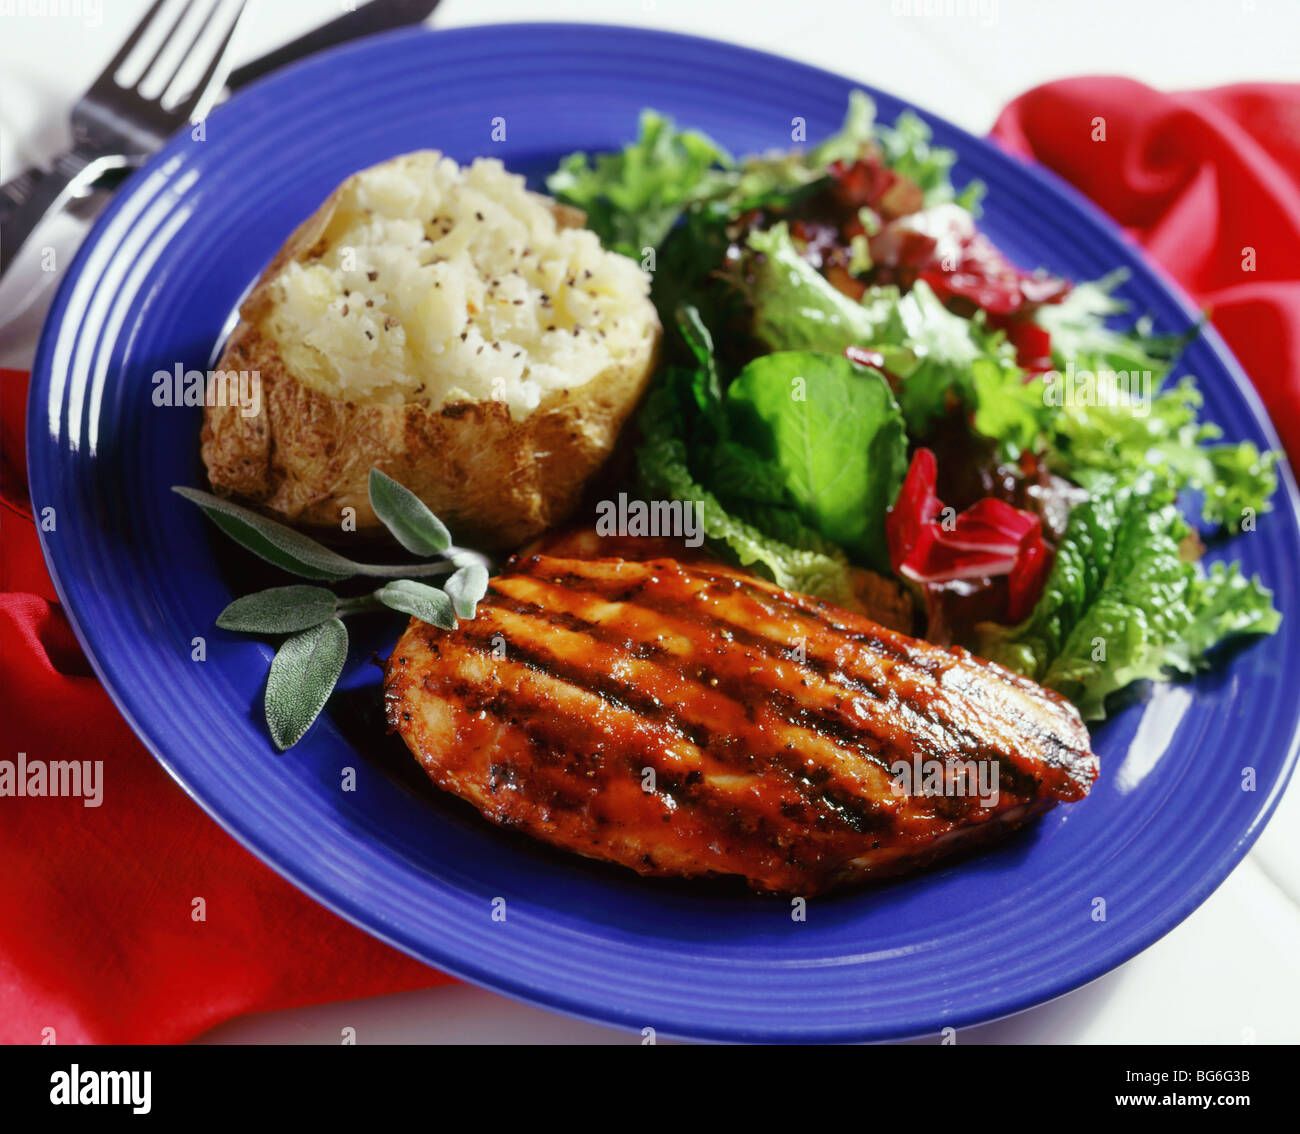 Image Result For Id Grilled